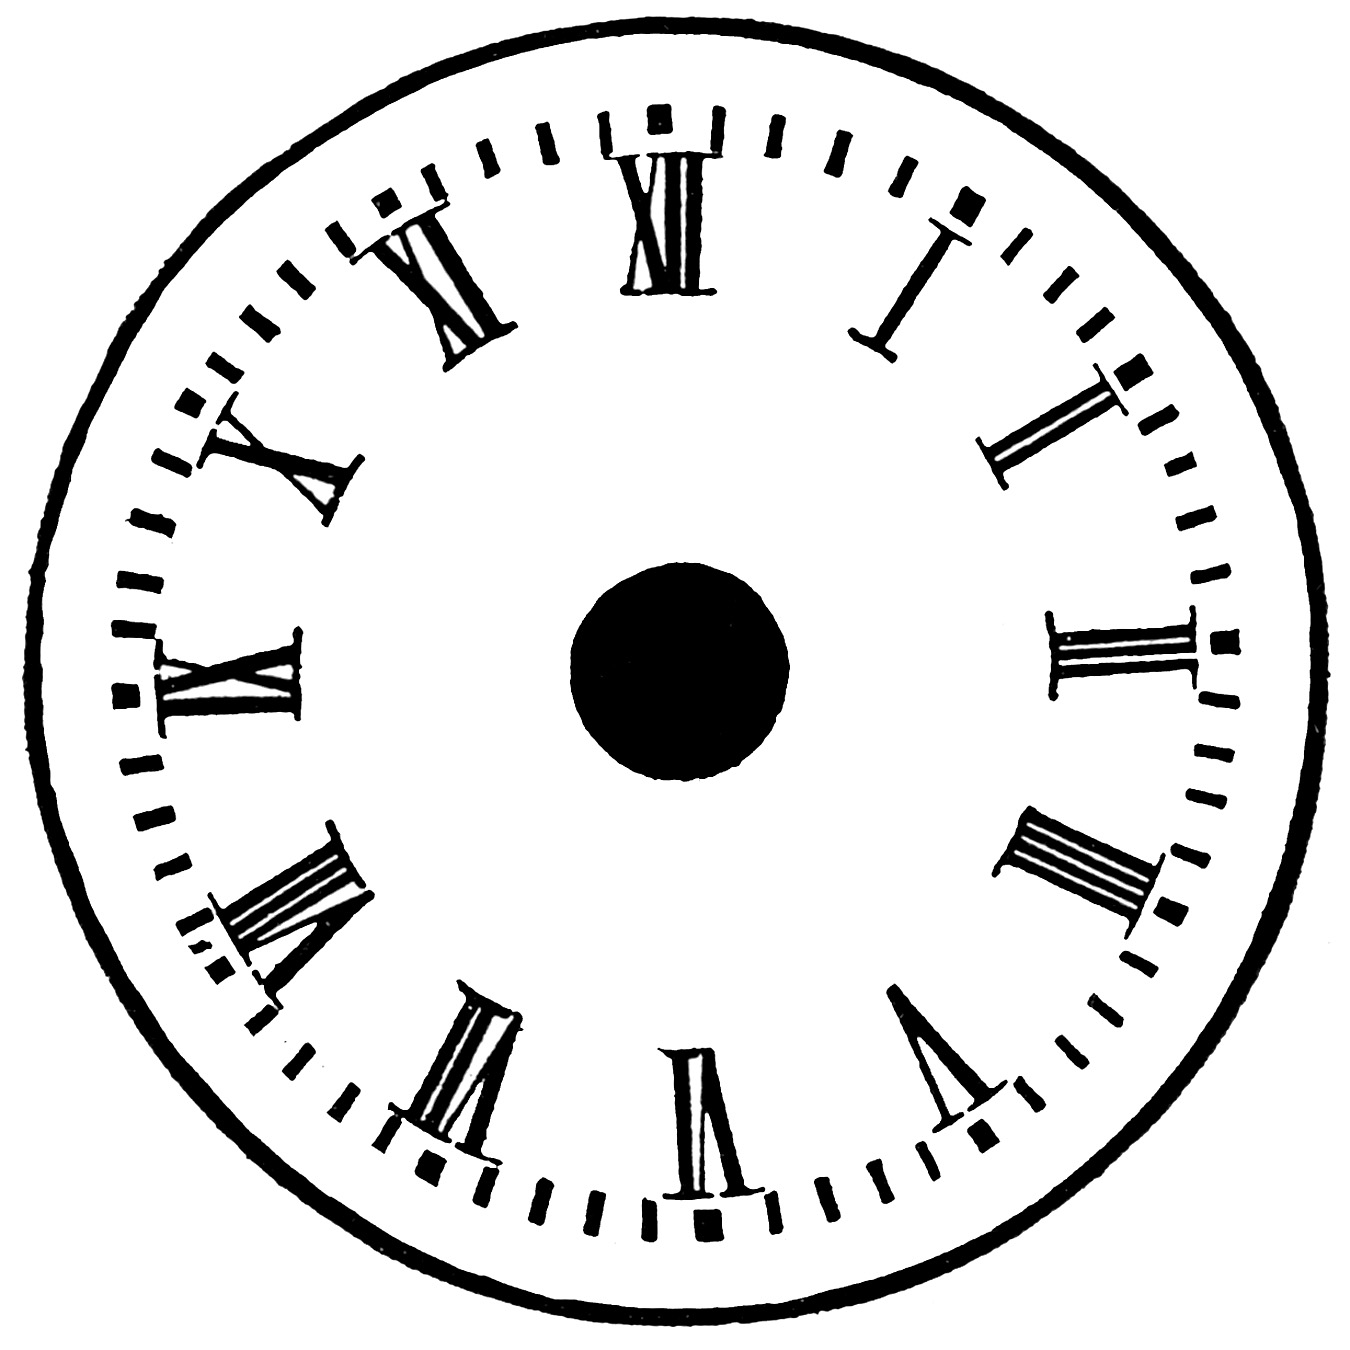 Printable blank clock face clipart 2 image #10692